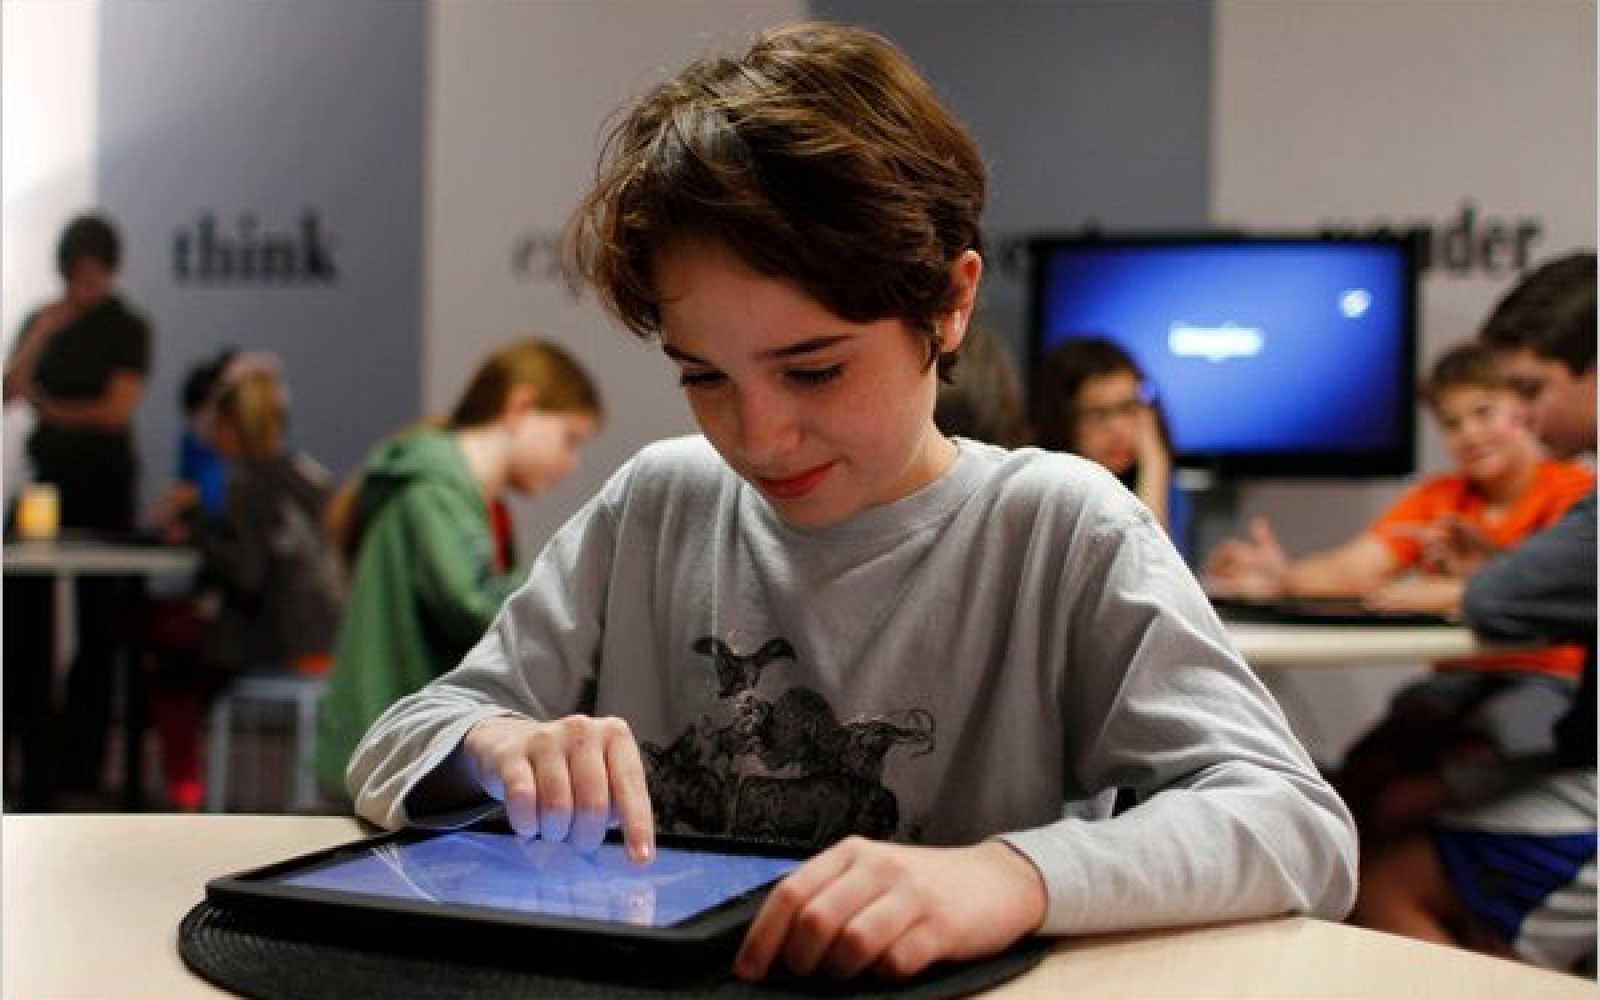 Rollout of iPads to all LA district school students may be delayed after kids bypass restrictions